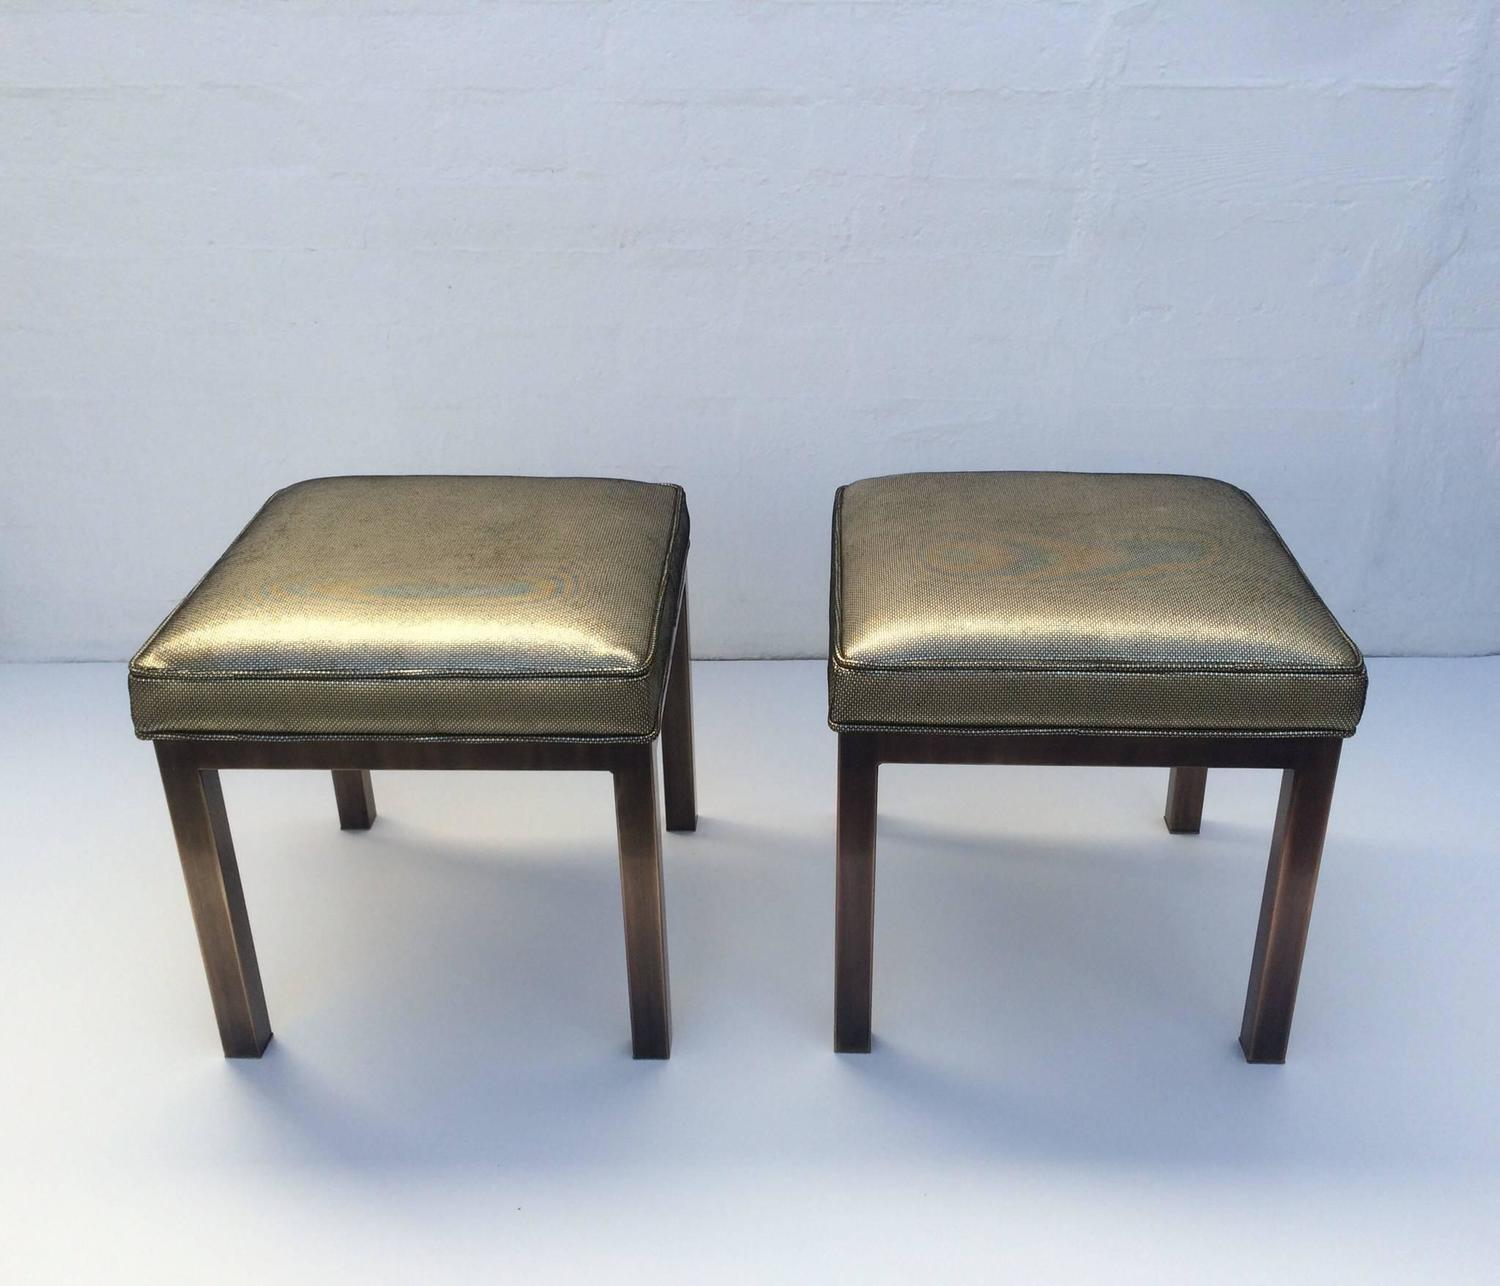 Leather And Brass Ottomans By Mastercraft For Sale At 1stdibs